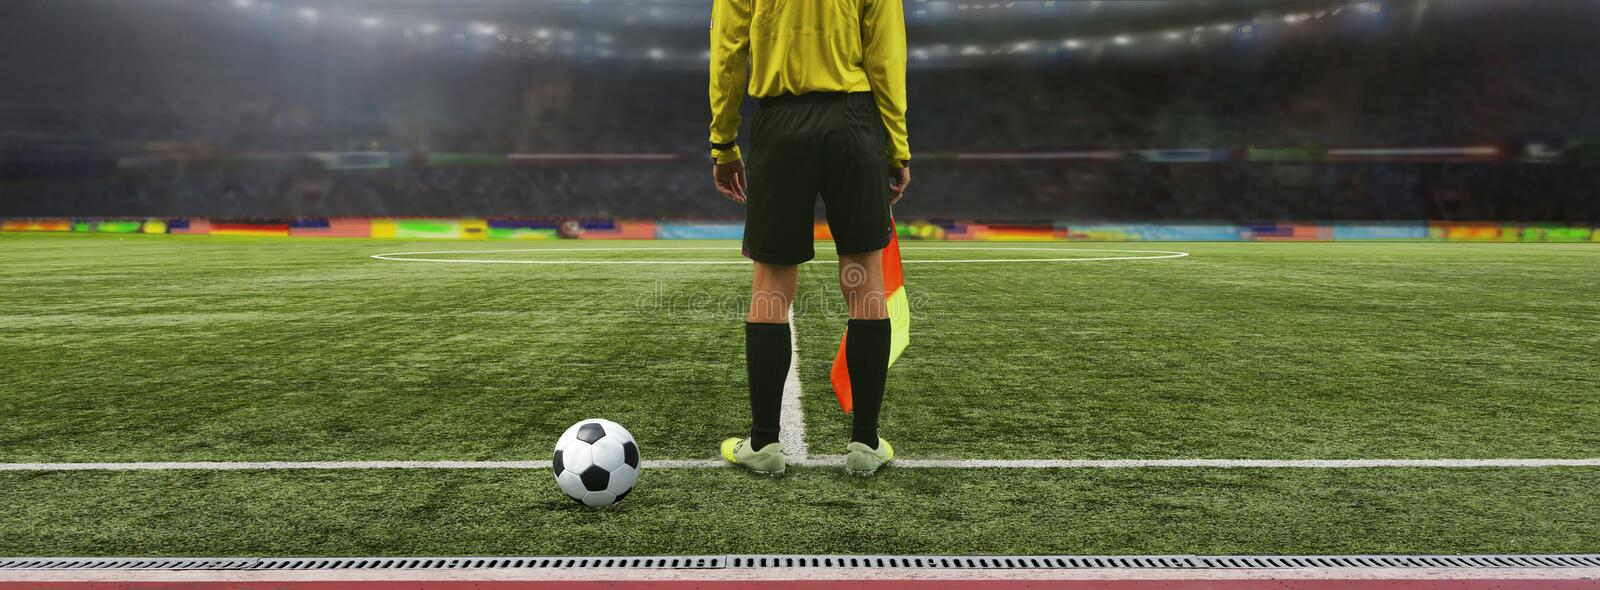 The referee soccer game. Stands on the field before the game, ready to blow the whistle royalty free stock photos